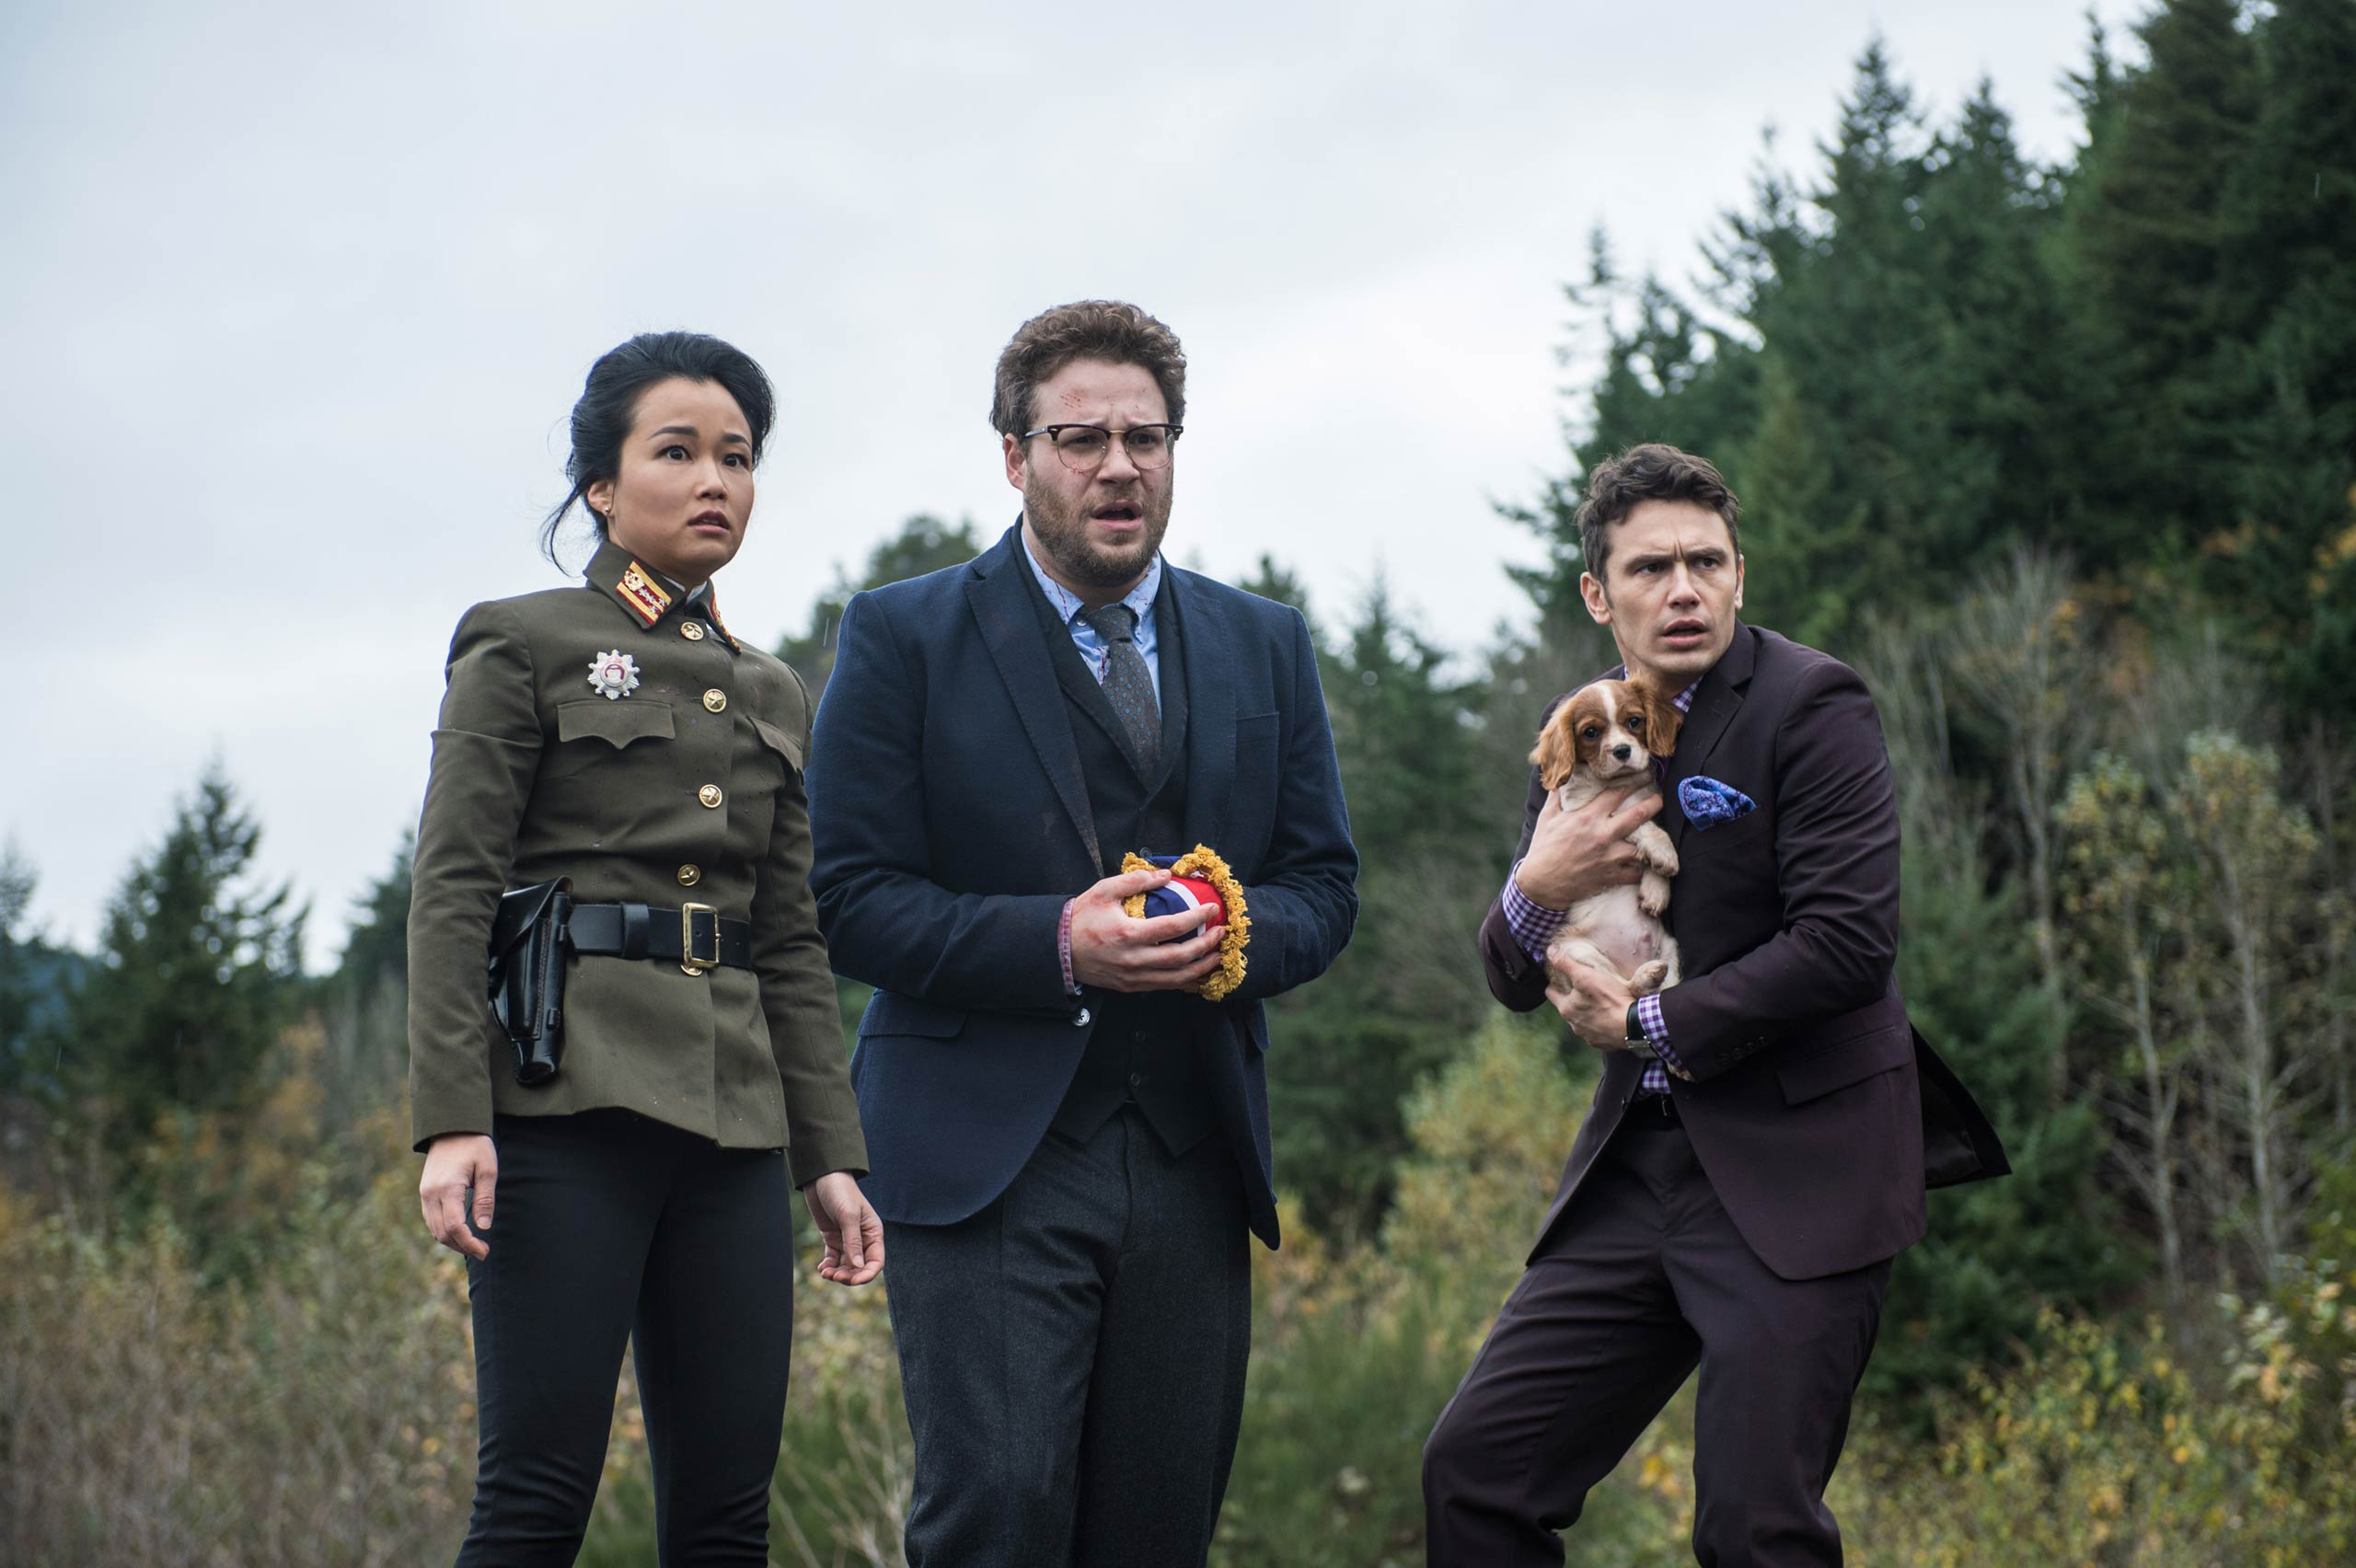 <strong><i>The Interview</i>, 2014</strong> The James Franco-Seth Rogen movie hadn't even been released when it made its greatest impact. <i>The Interview</i>, about two Americans on a mission to kill Kim Jong-un, has sparked conversations about the tastefulness -- or not -- of depicting the killing of a foreign head of state. But it also is widely seen as having sparked the Sony hacking scandal, as the hackers, known as the Guardians of Peace, have urged Sony not to release the film. The ripple effect of the email hack saw off-color remarks about Angelina Jolie, Aaron Sorkin, and President Obama between Sony executives go public.